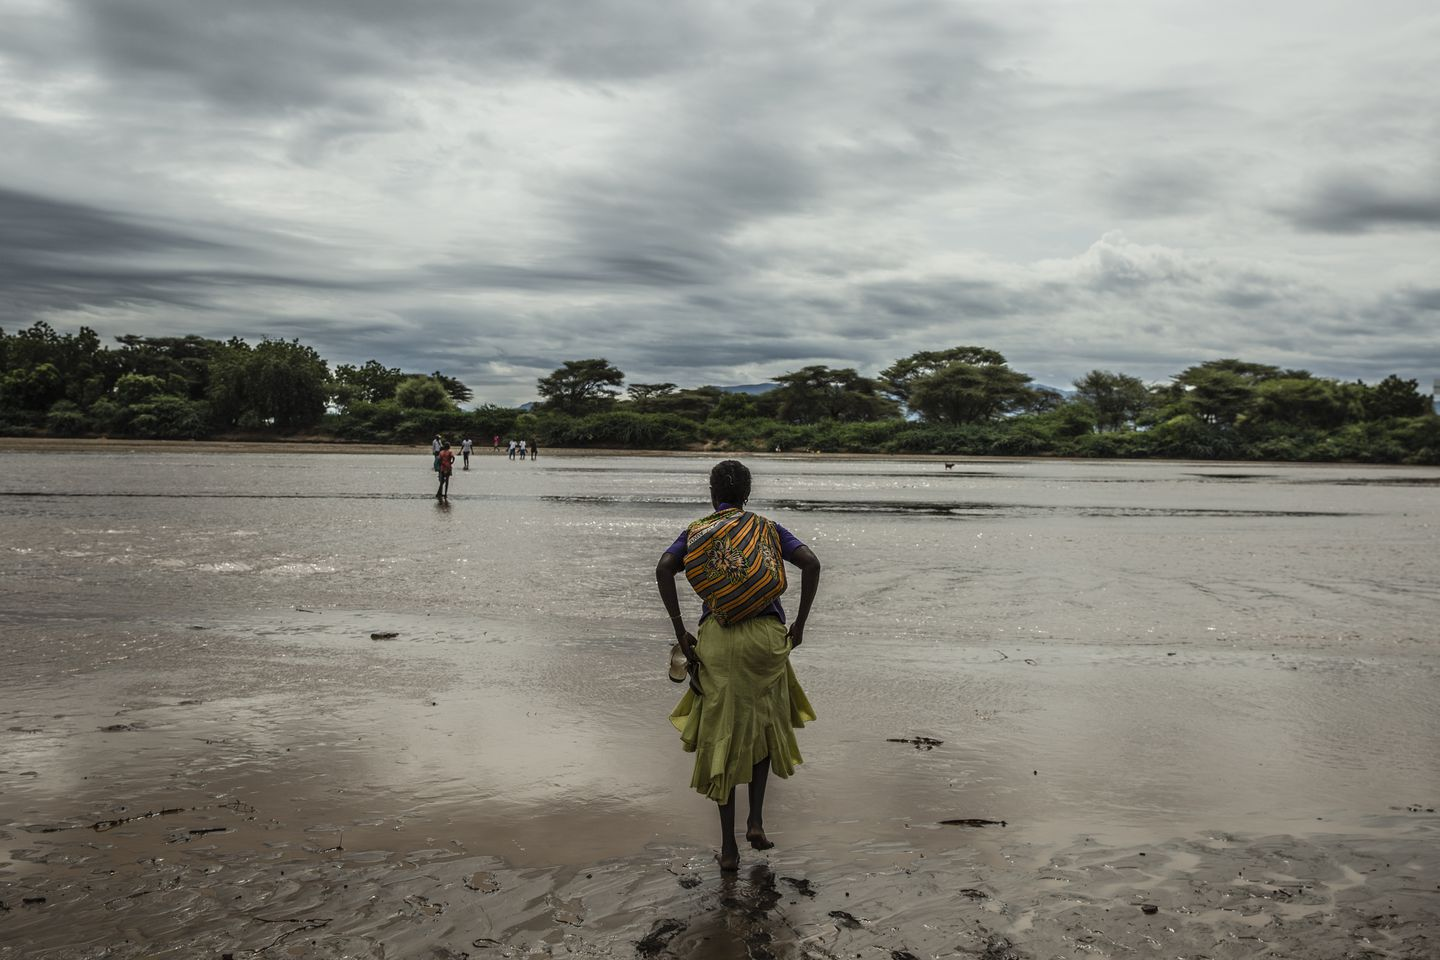 A woman hitches up her skirt to cross the Tarach River at the UNHCR refugee camp .